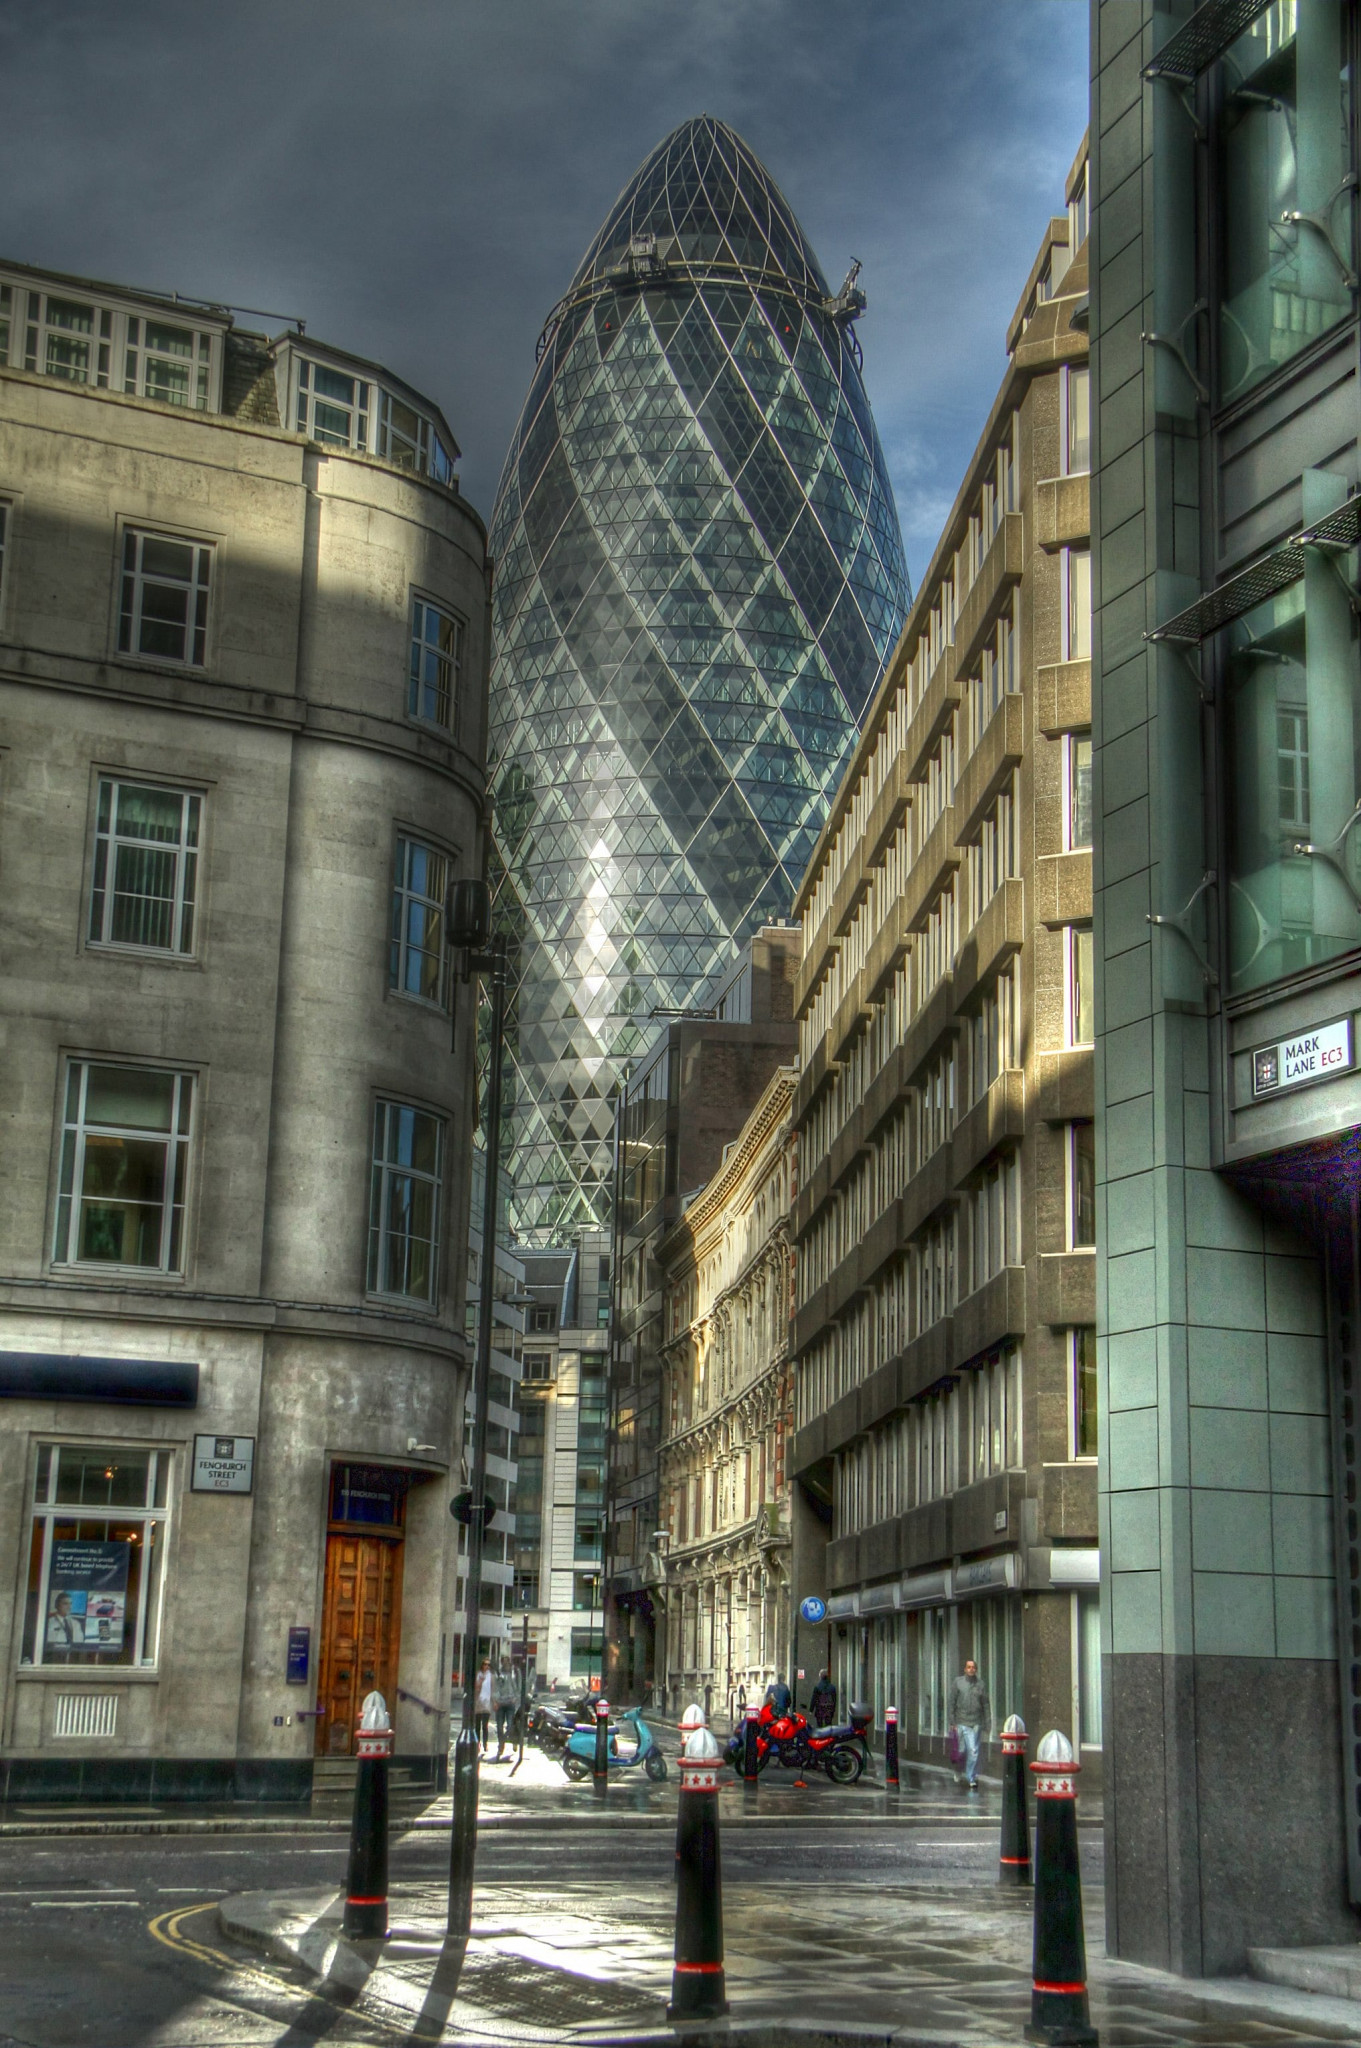 Swiss Re building, St Mary's Axe, London, HDR image.